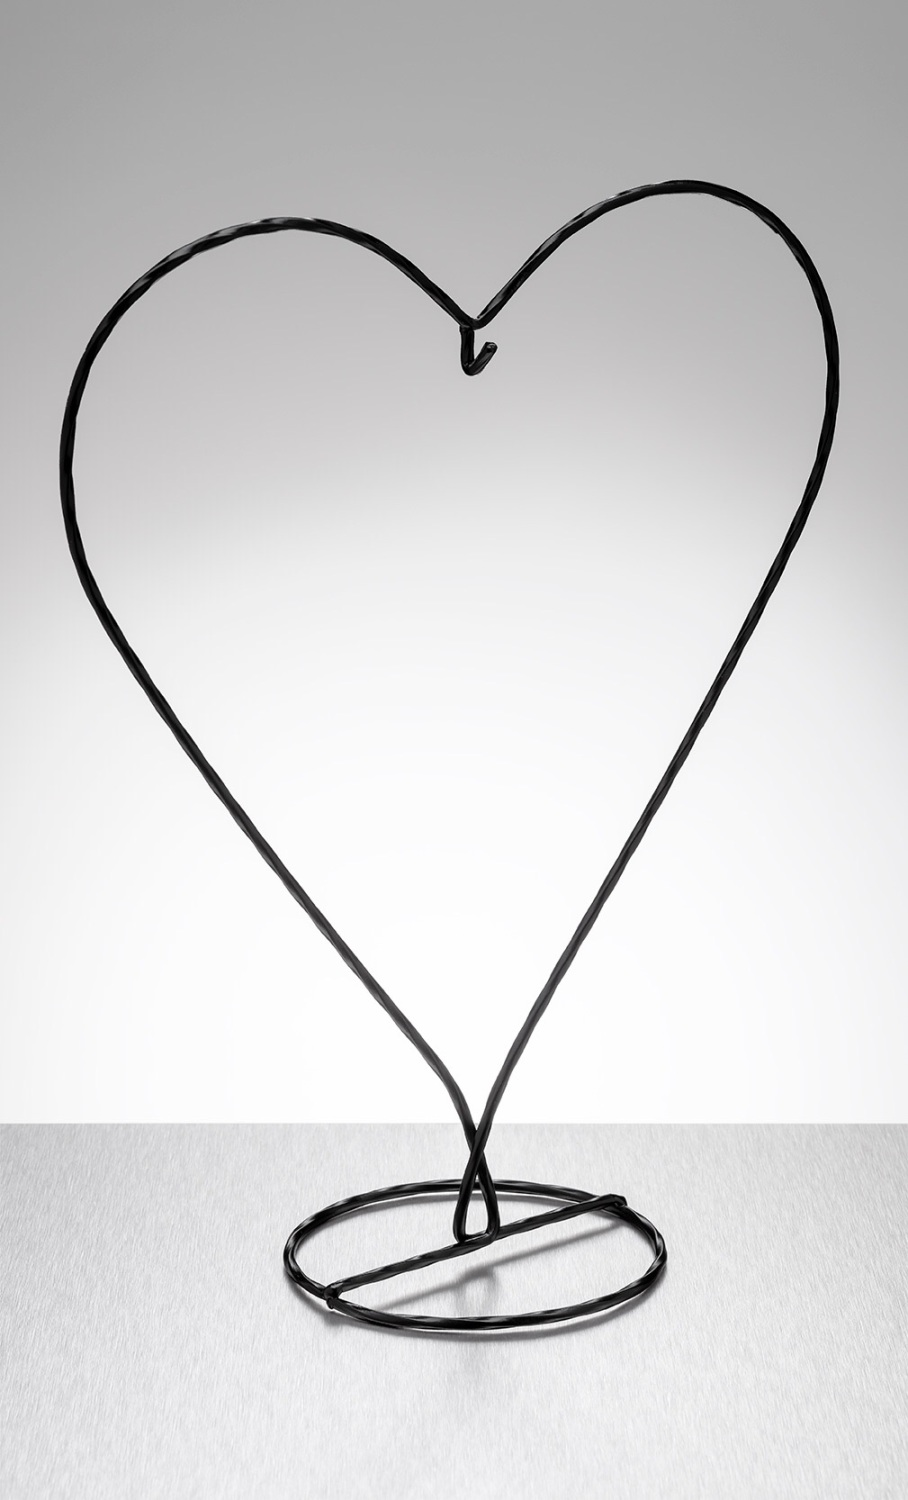 Stand (heart) Black